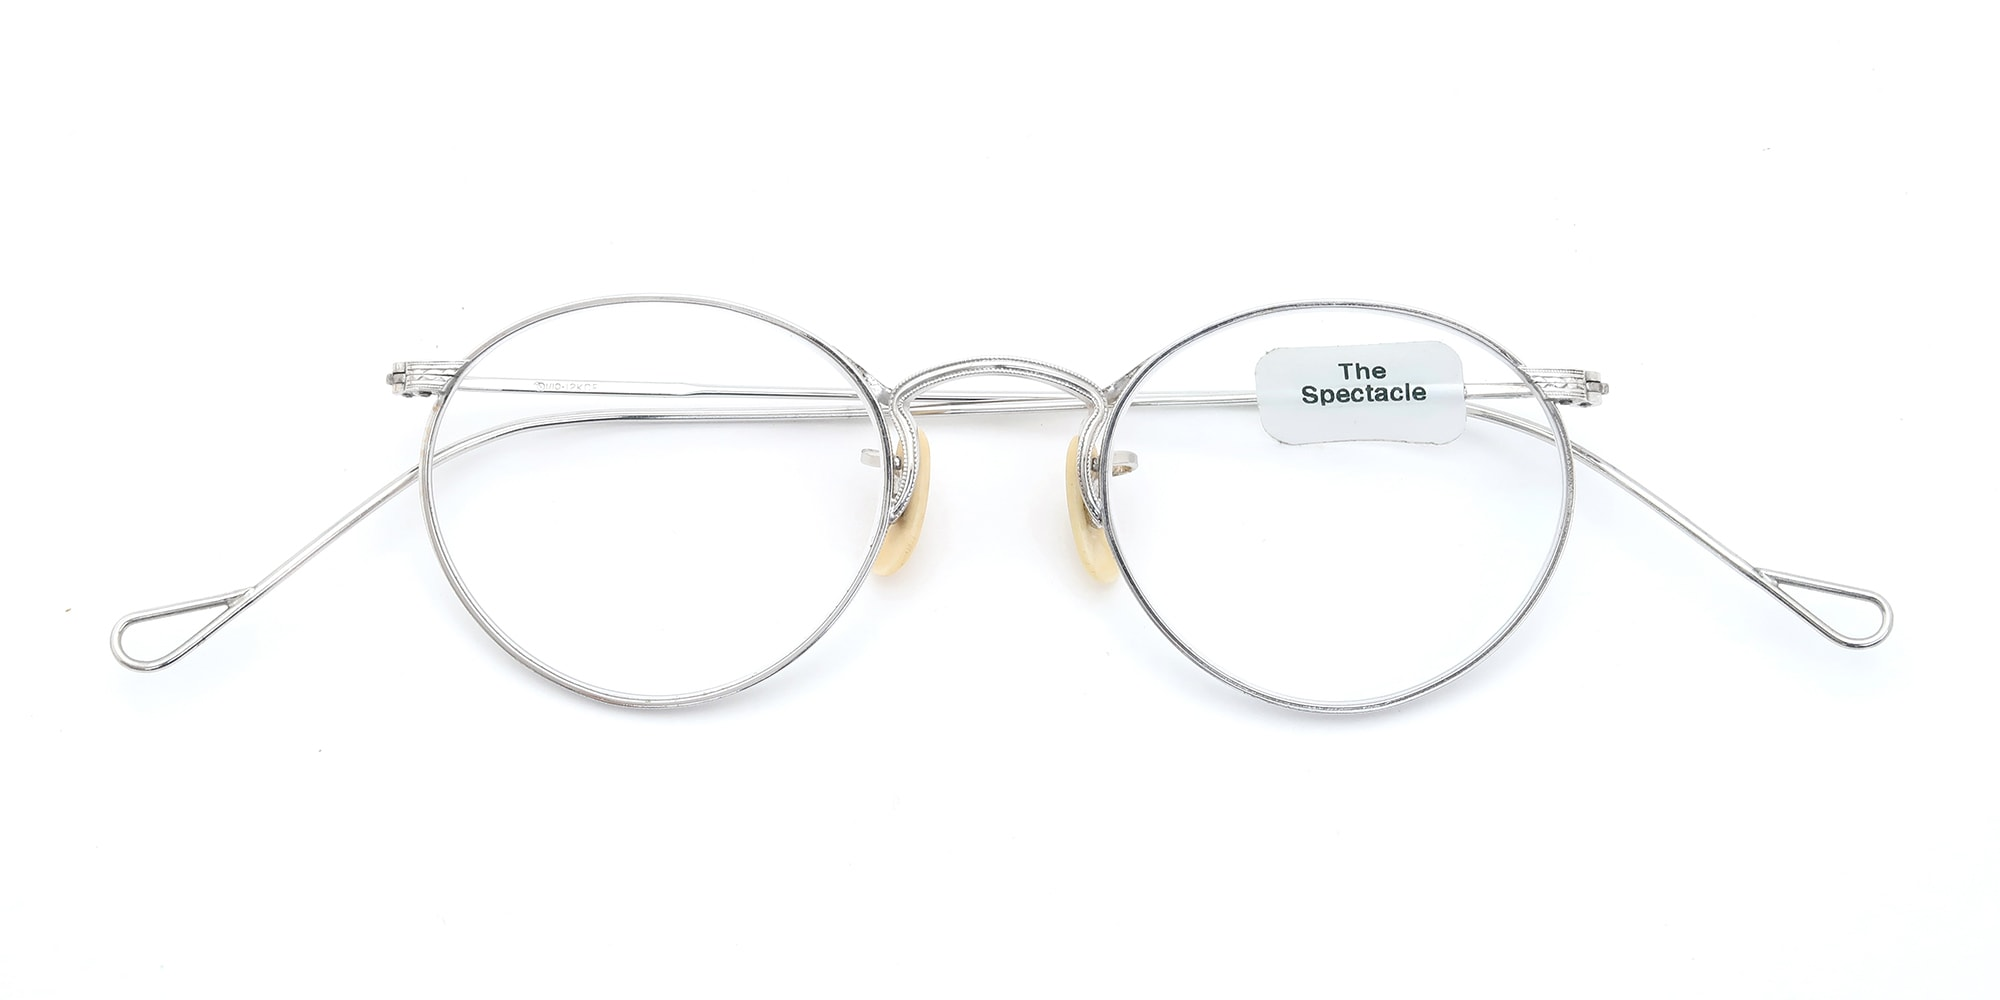 The Spectacle メガネ 1930s-40s American Optical Full-Frame Ful-Vue P-5 WG イメージ5